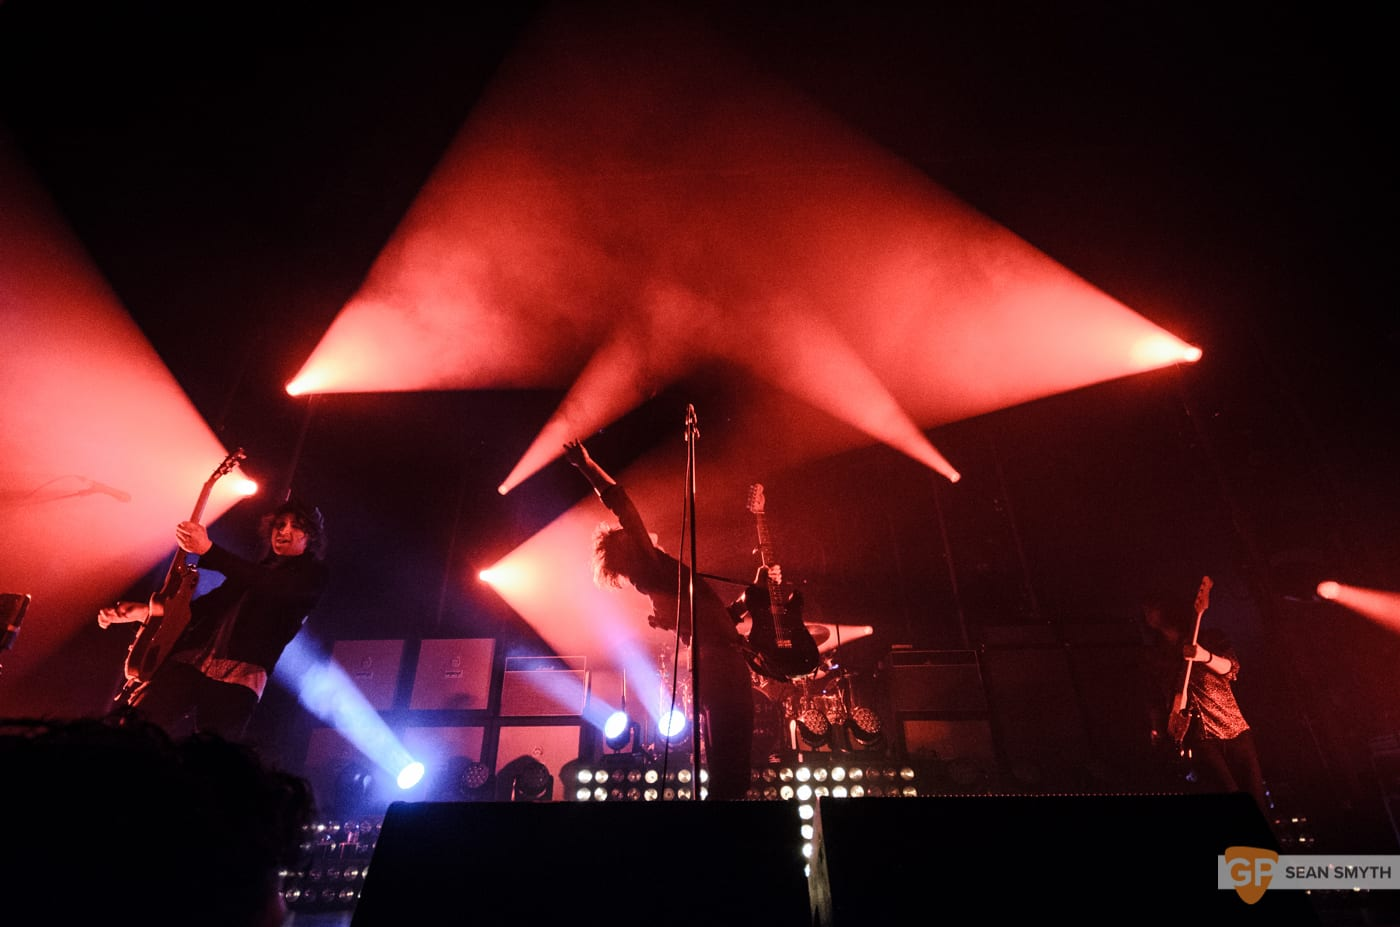 catfish-and-the-bottlemen-at-the-olympia-theatre-by-sean-smyth-20-11-16-9-of-27